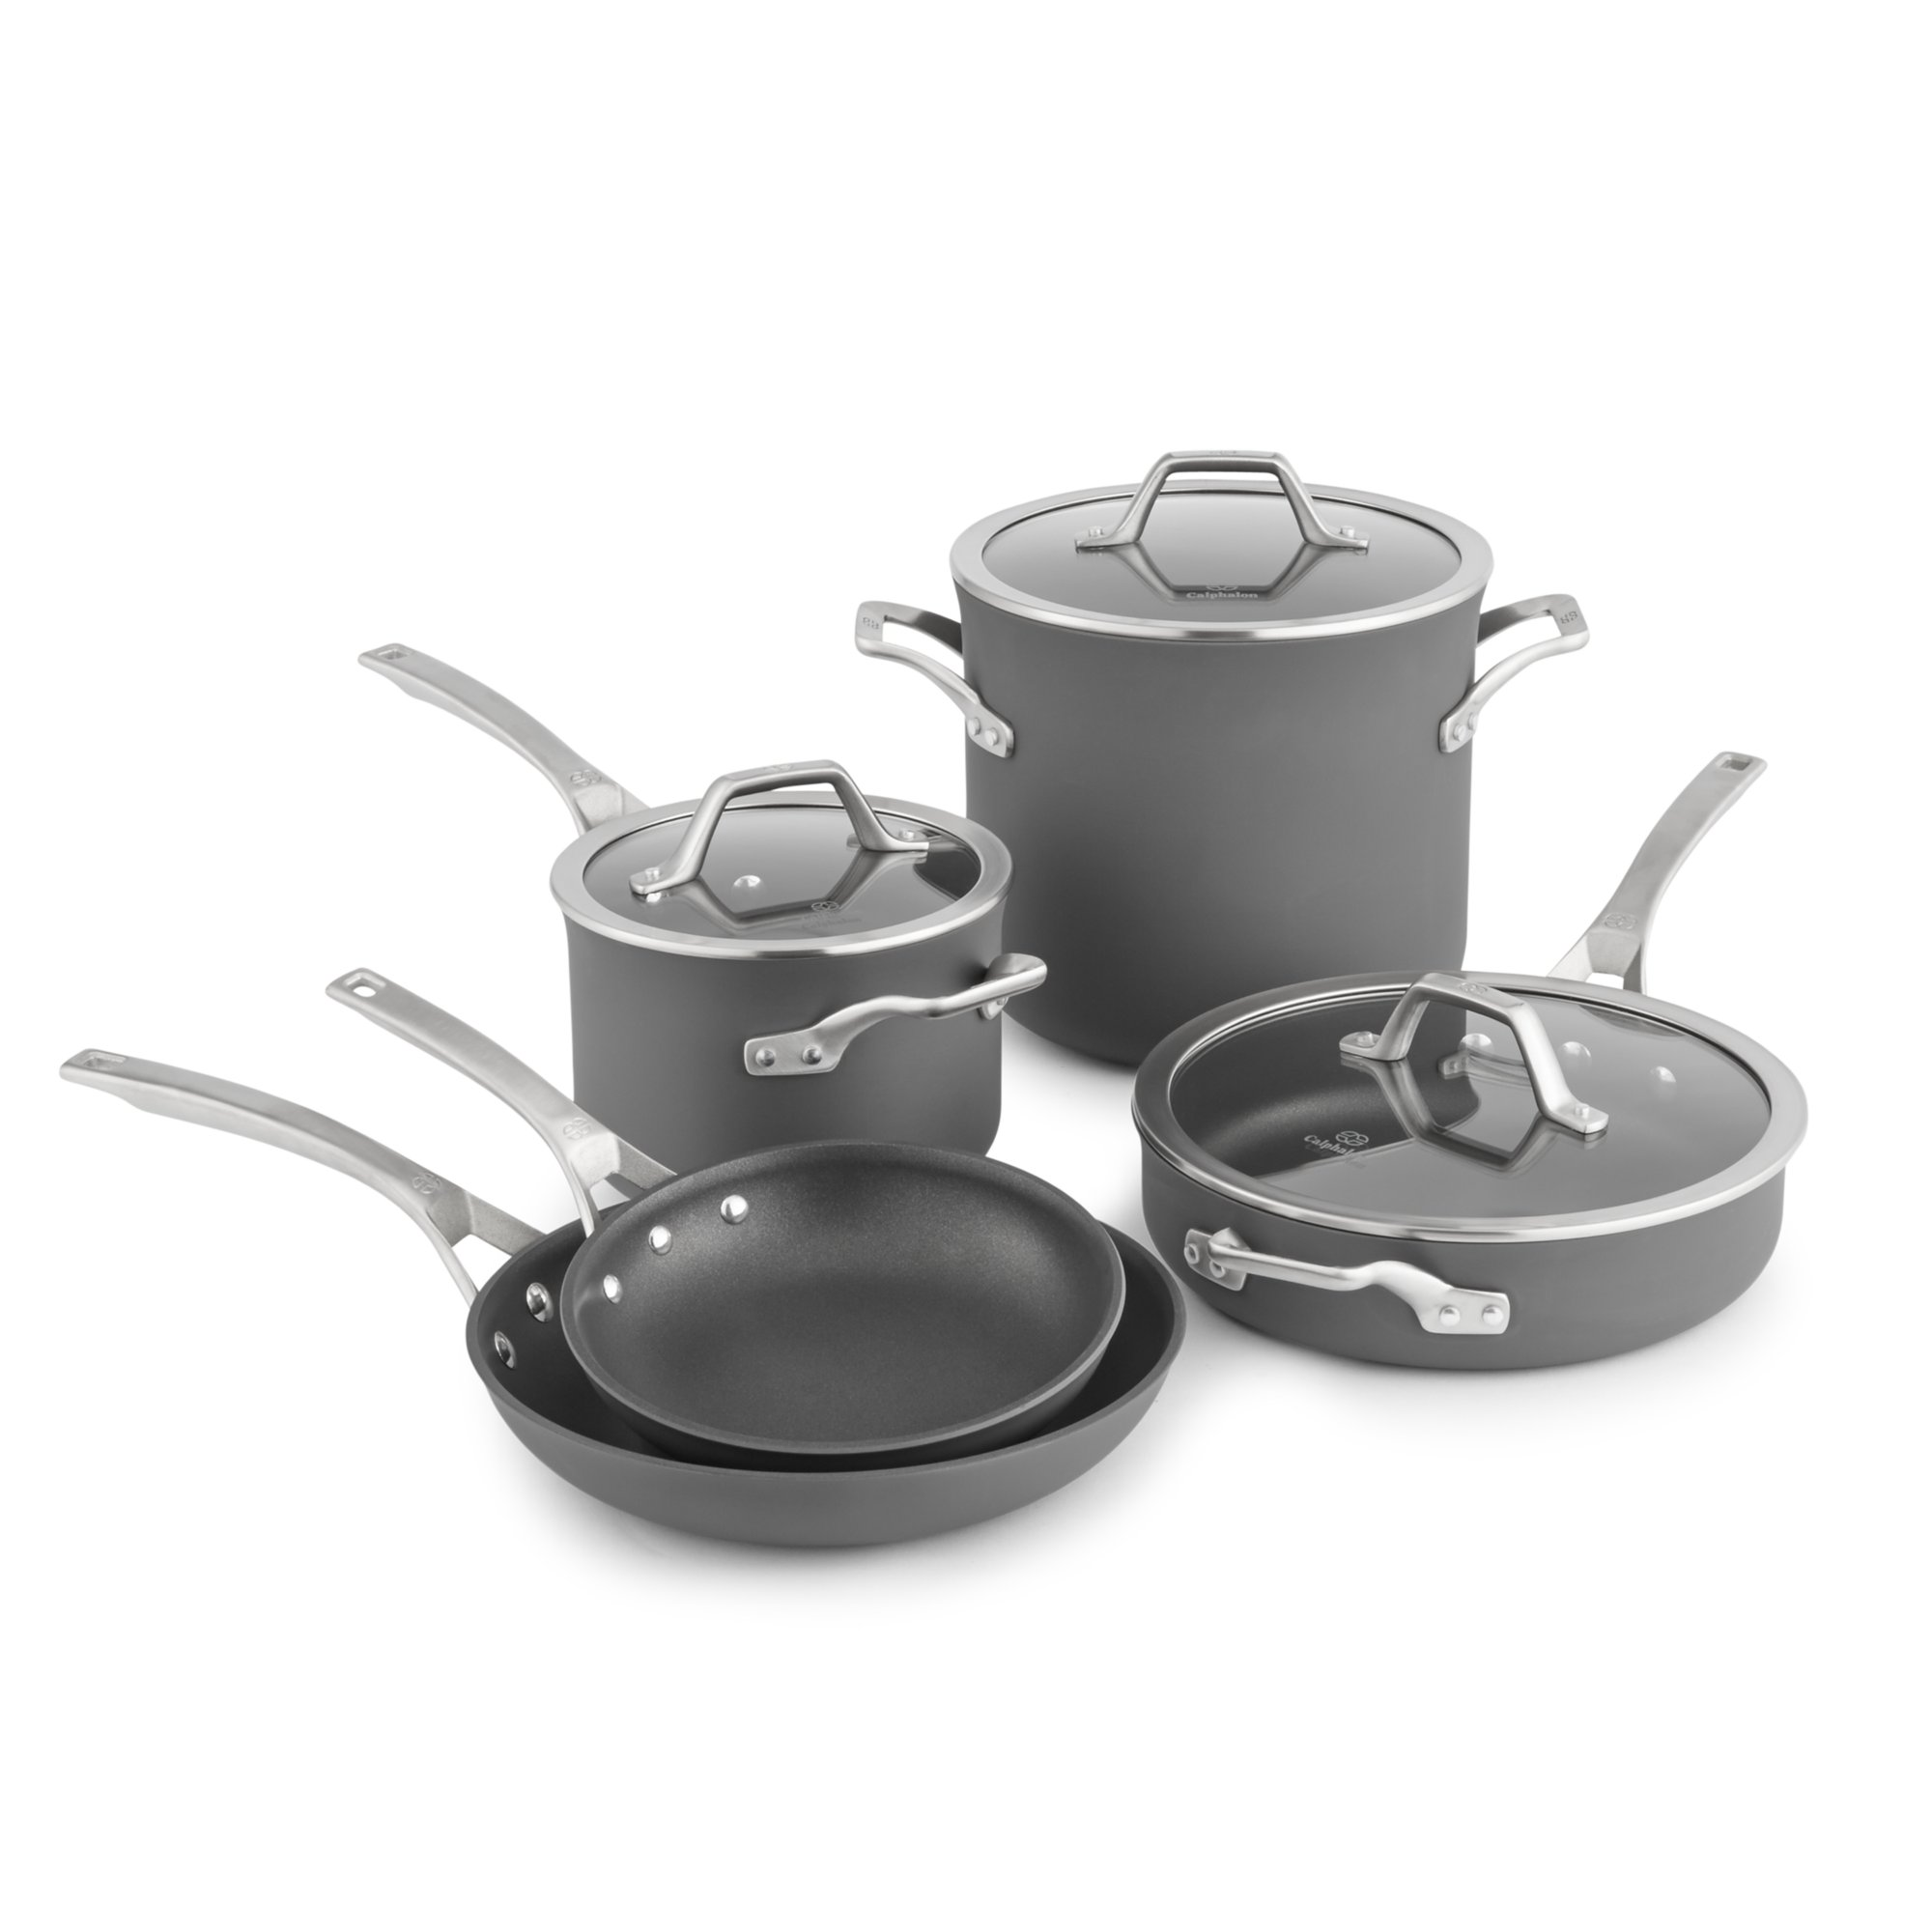 calphalon kitchen essentials stainless steel clogs signature nonstick 8 pc cookware set